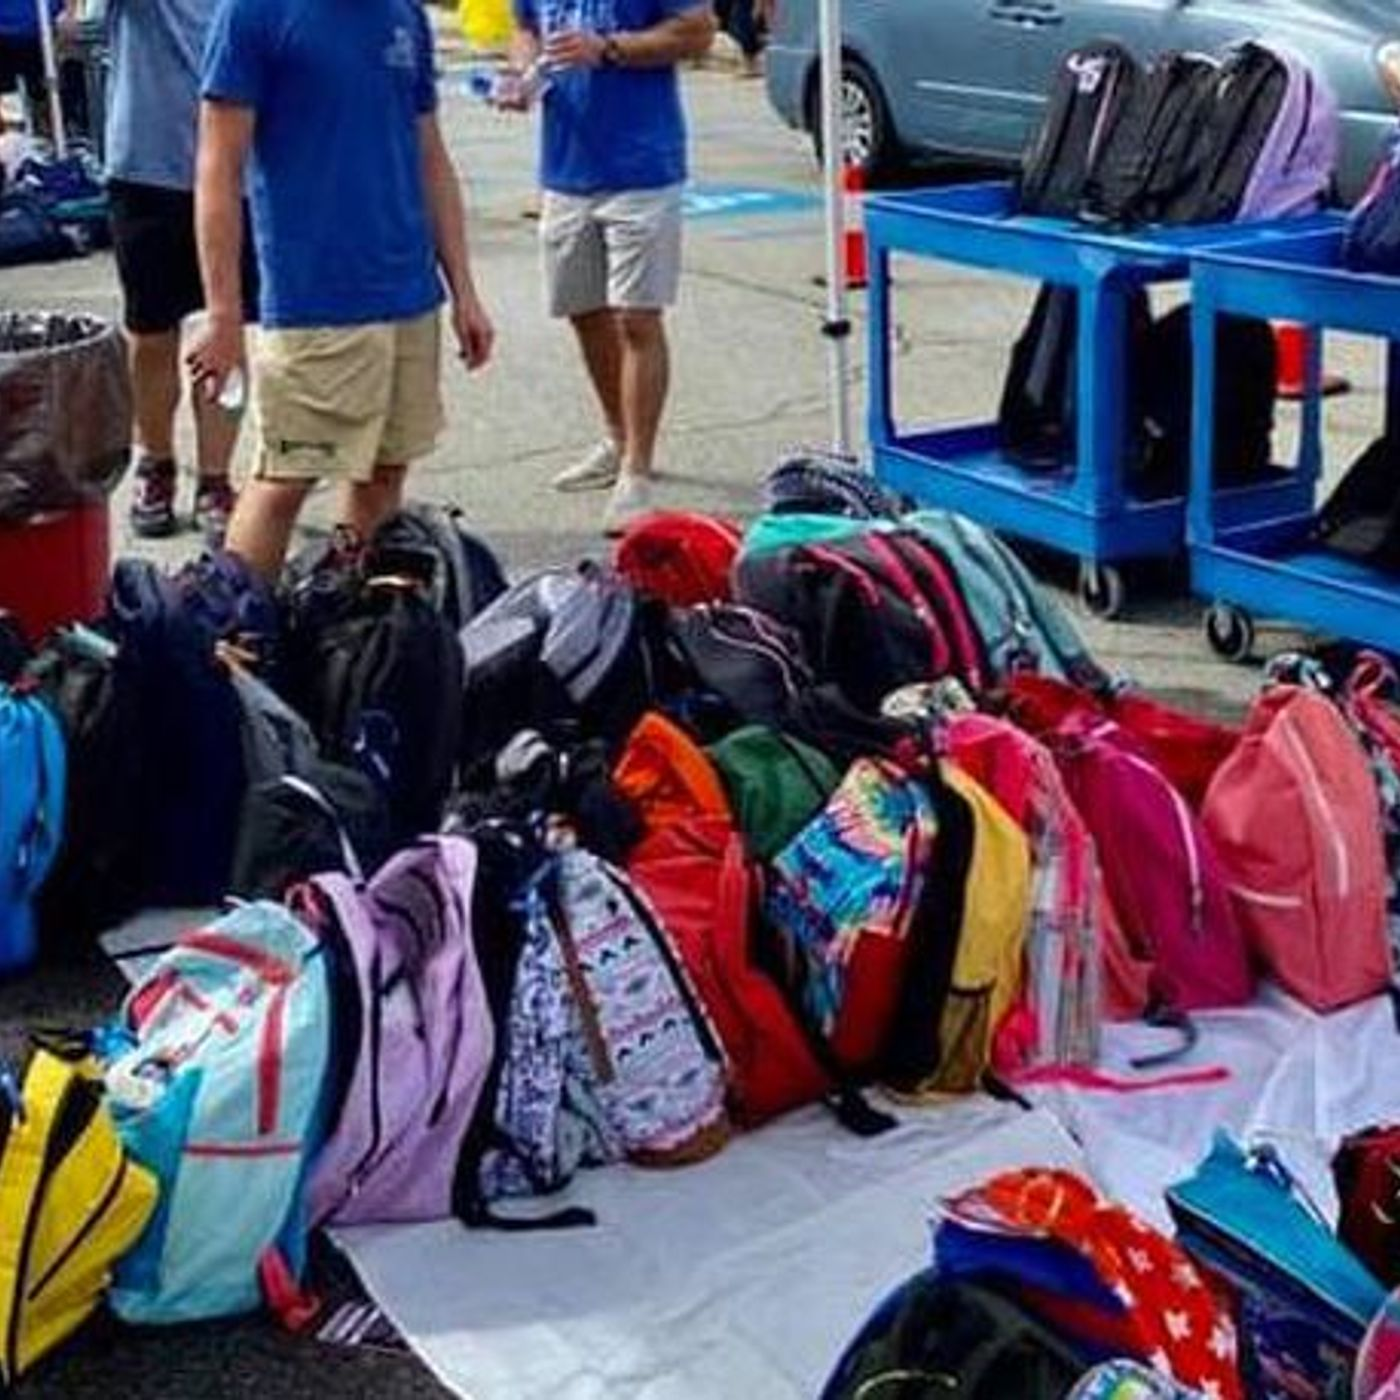 Help Out With School Supplies